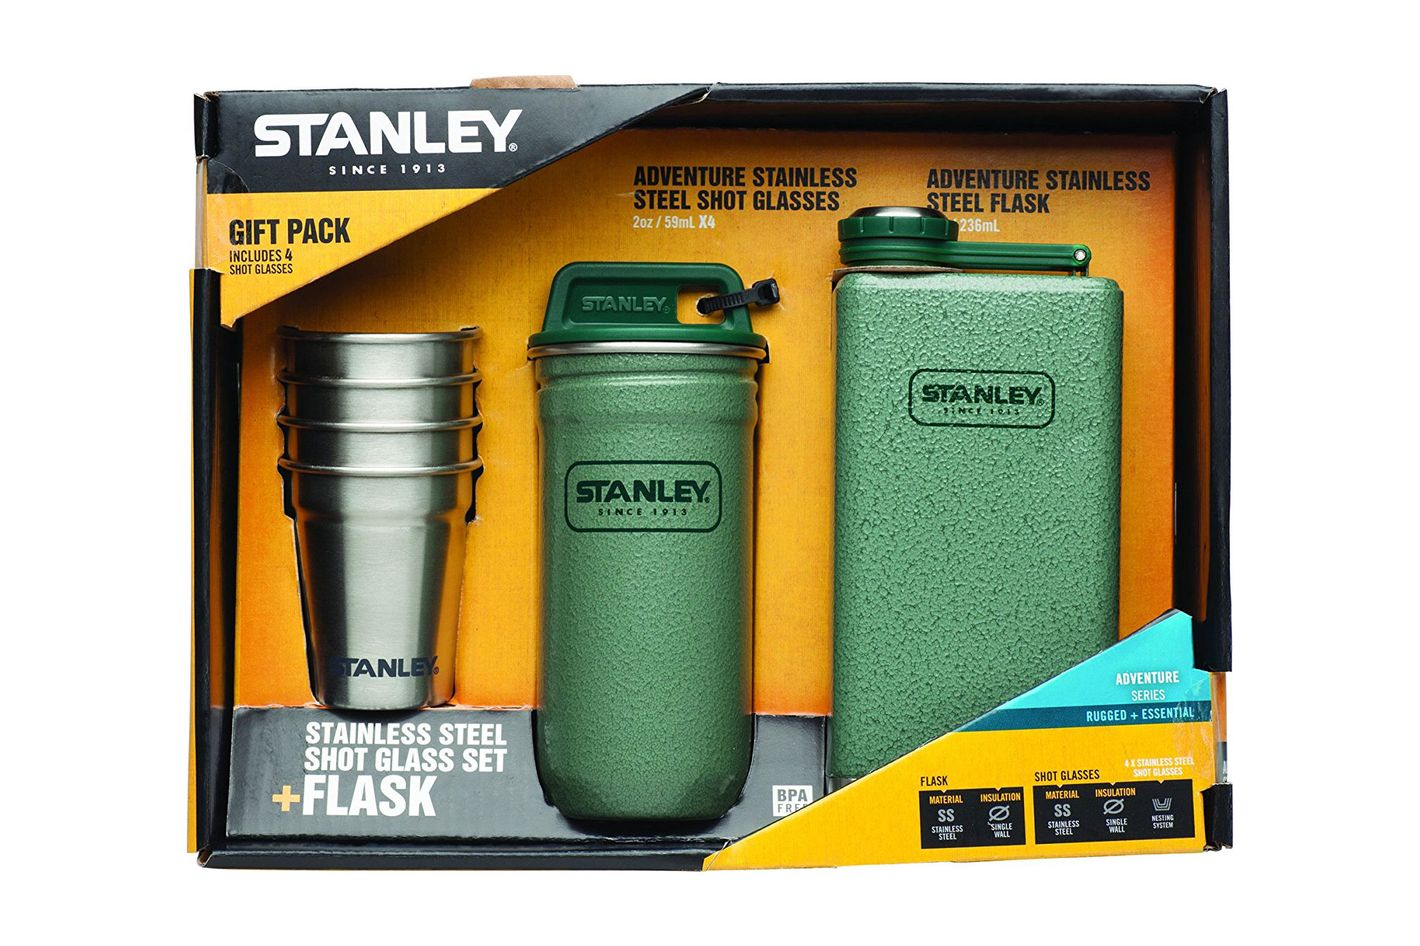 Stanley Stainless Steel Shots and Flask Gift Set